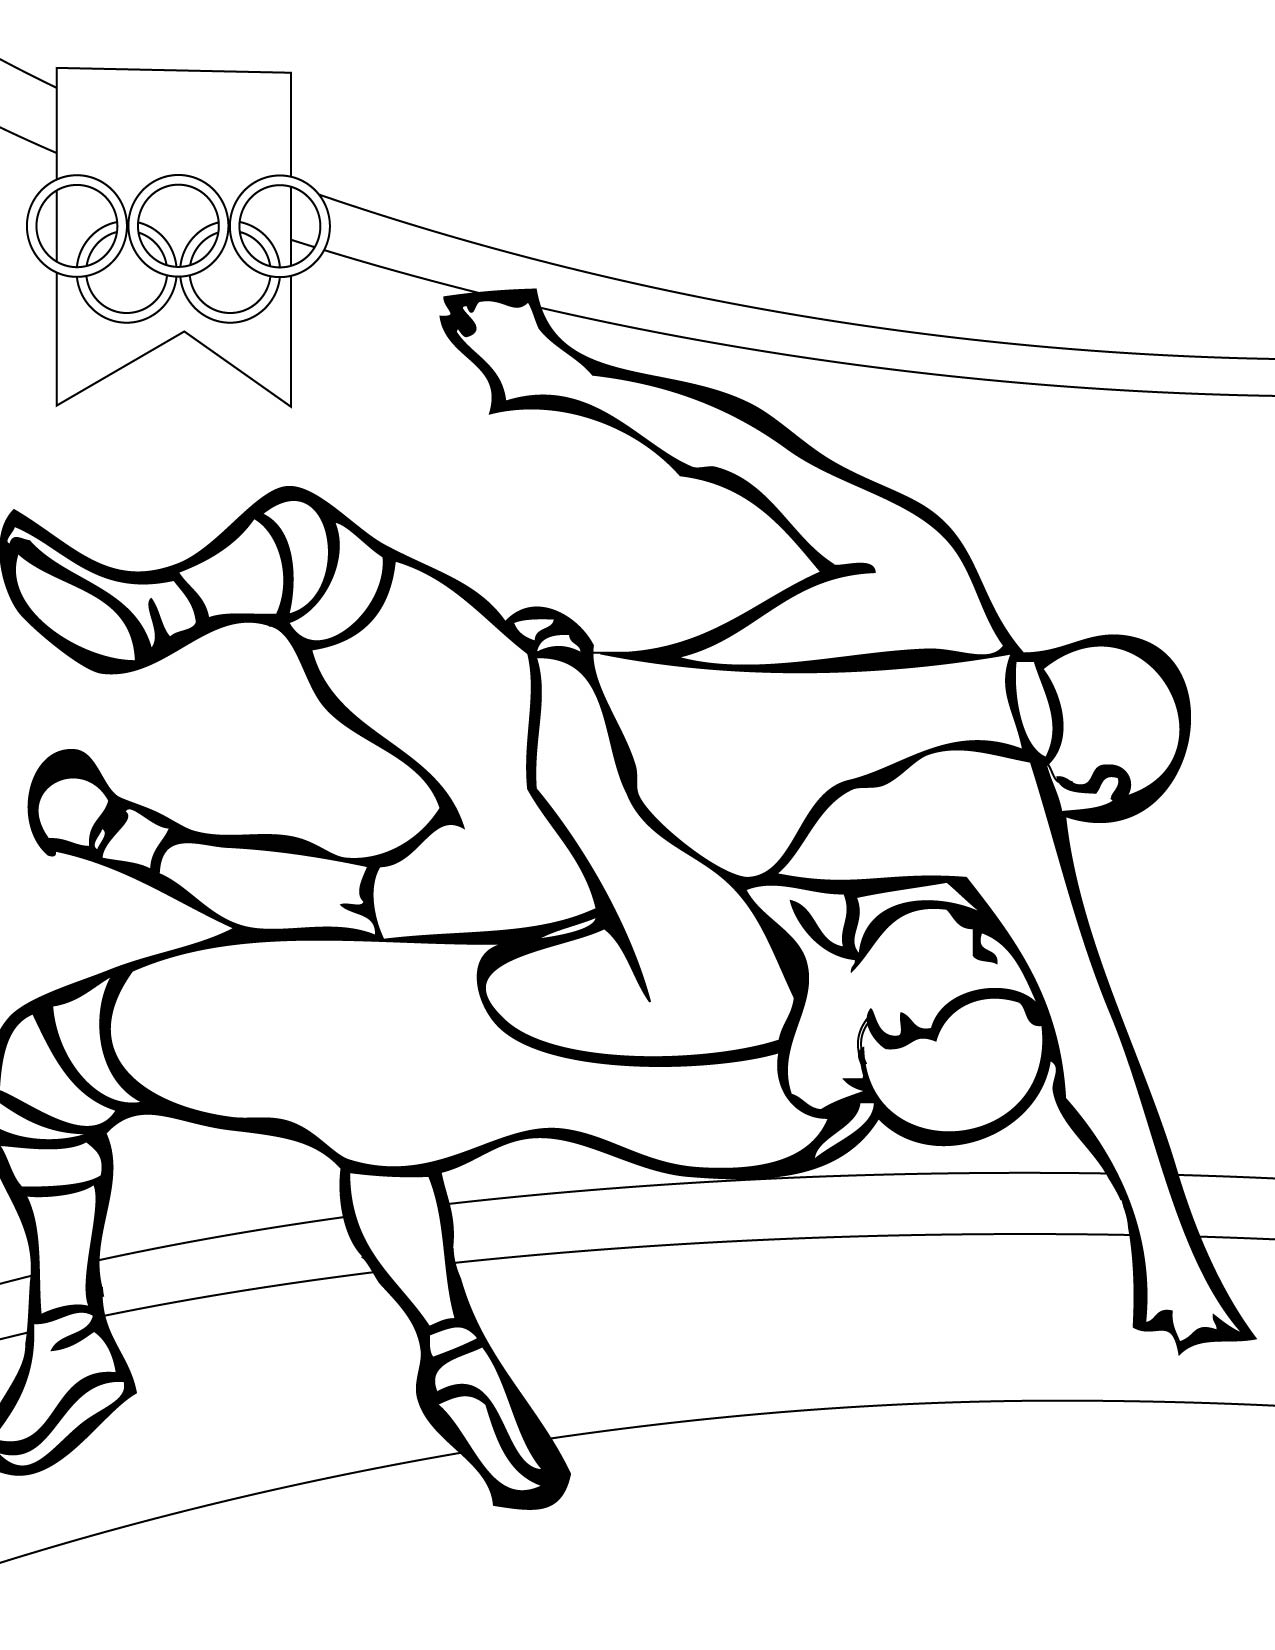 Amateur Wrestling Clipart Gallery